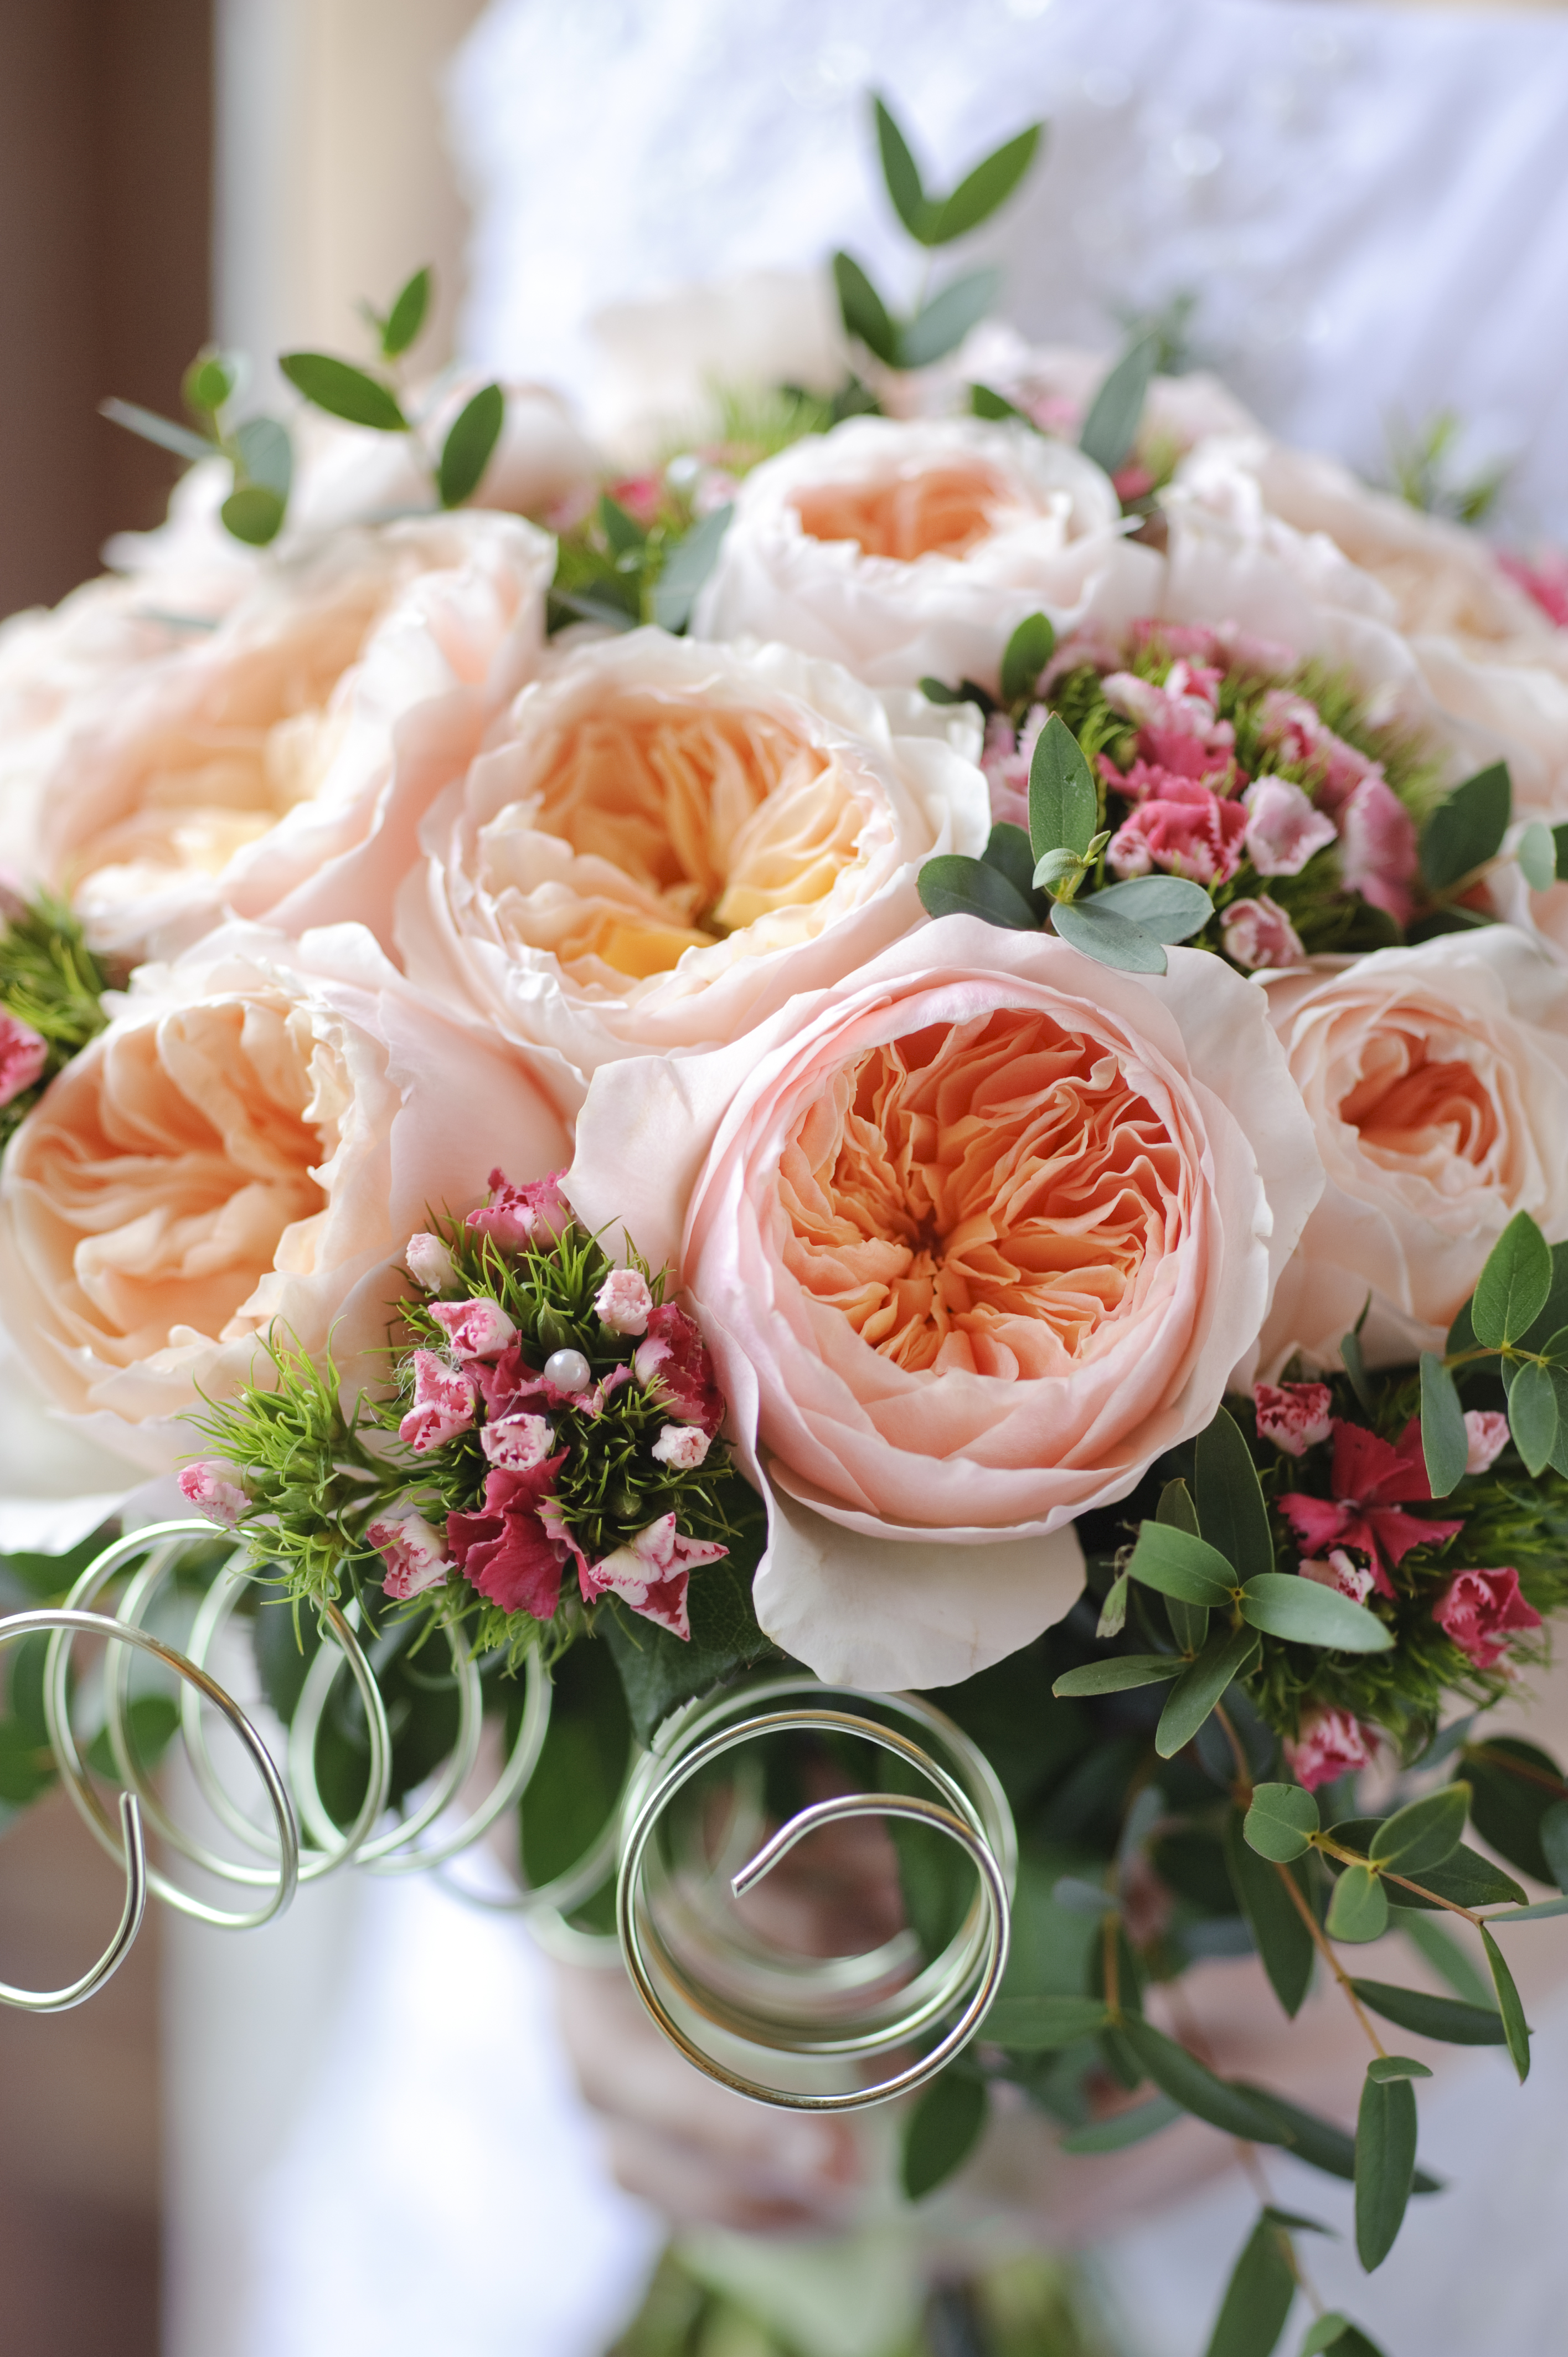 Juliet garden rose bouquet virgin farms - Garden rose bouquet ...